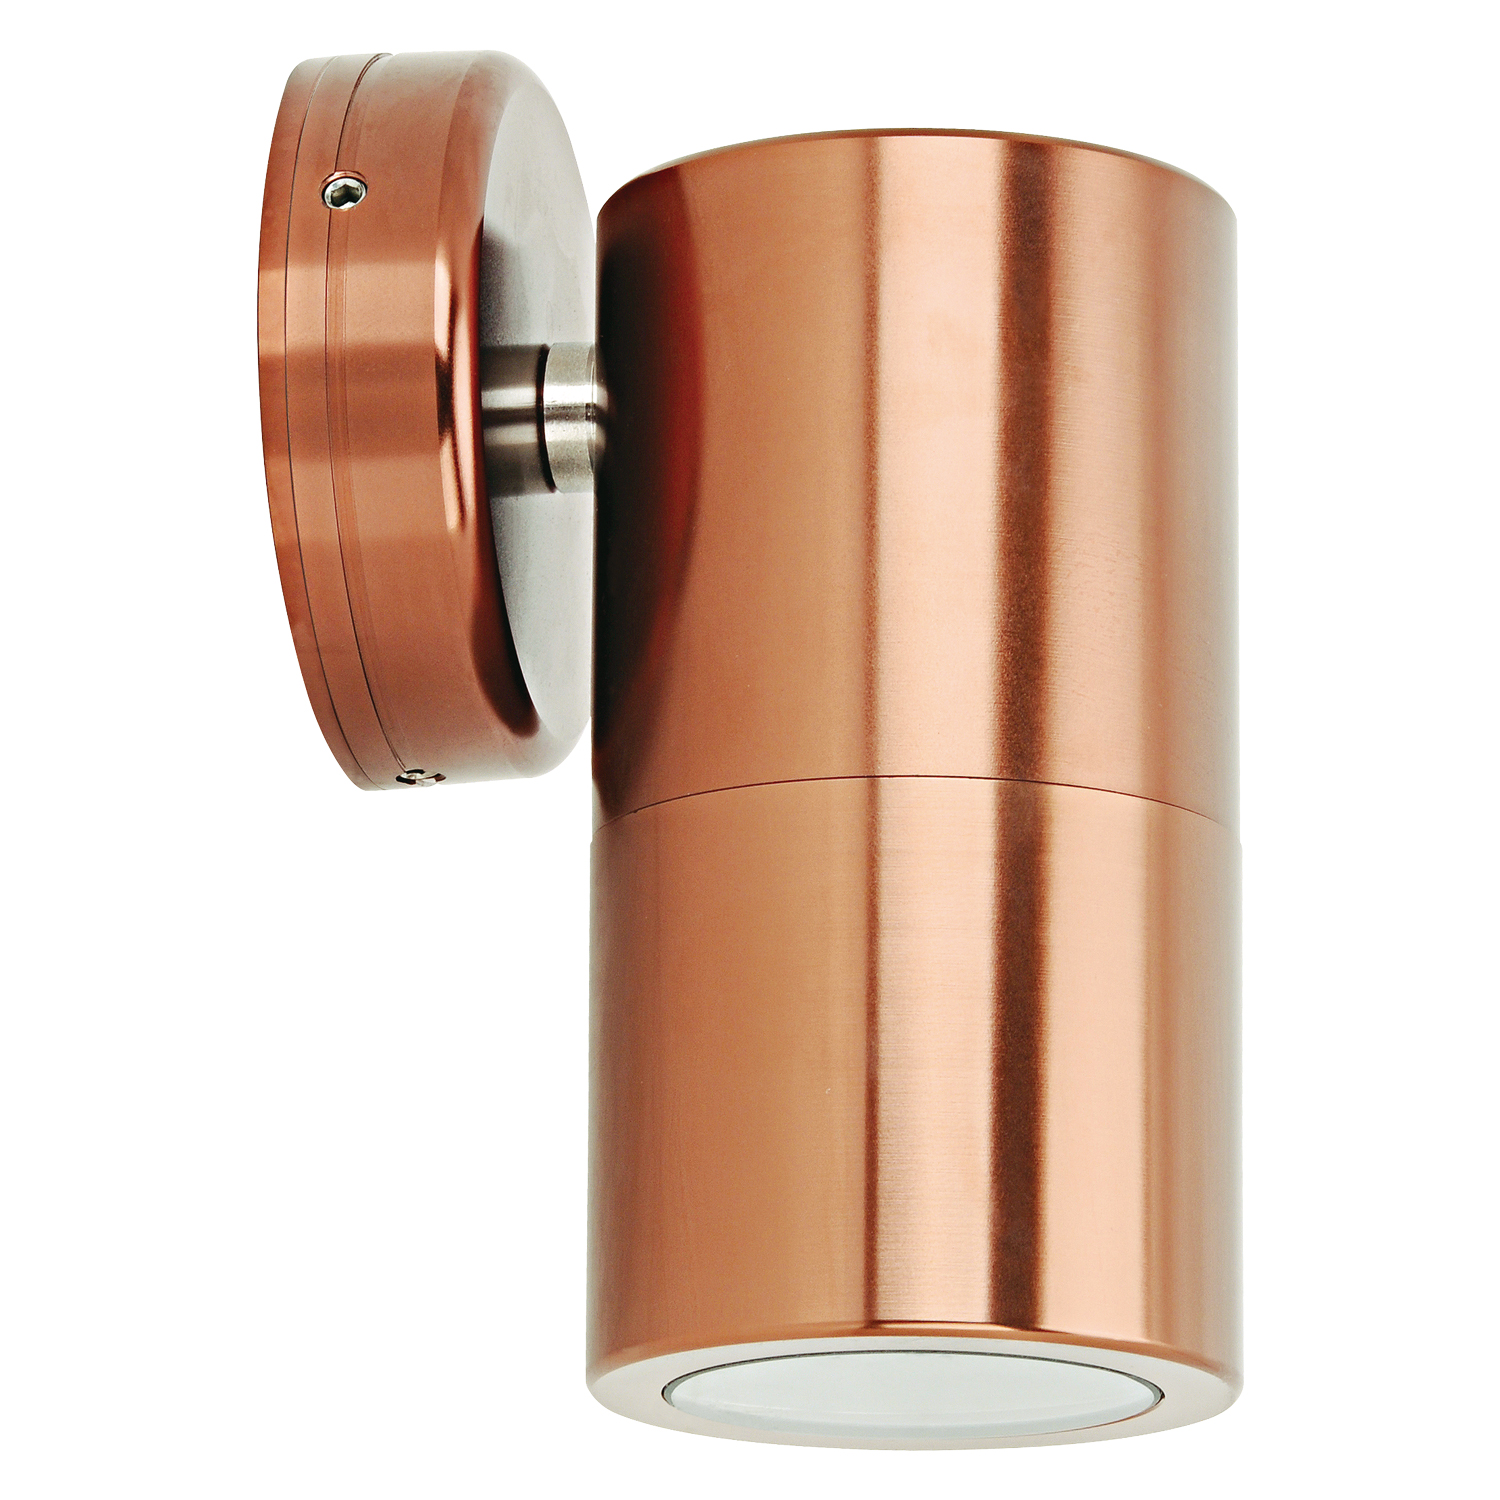 Led lighting led downlights led oysters led globes domus led exterior wall lights aloadofball Image collections